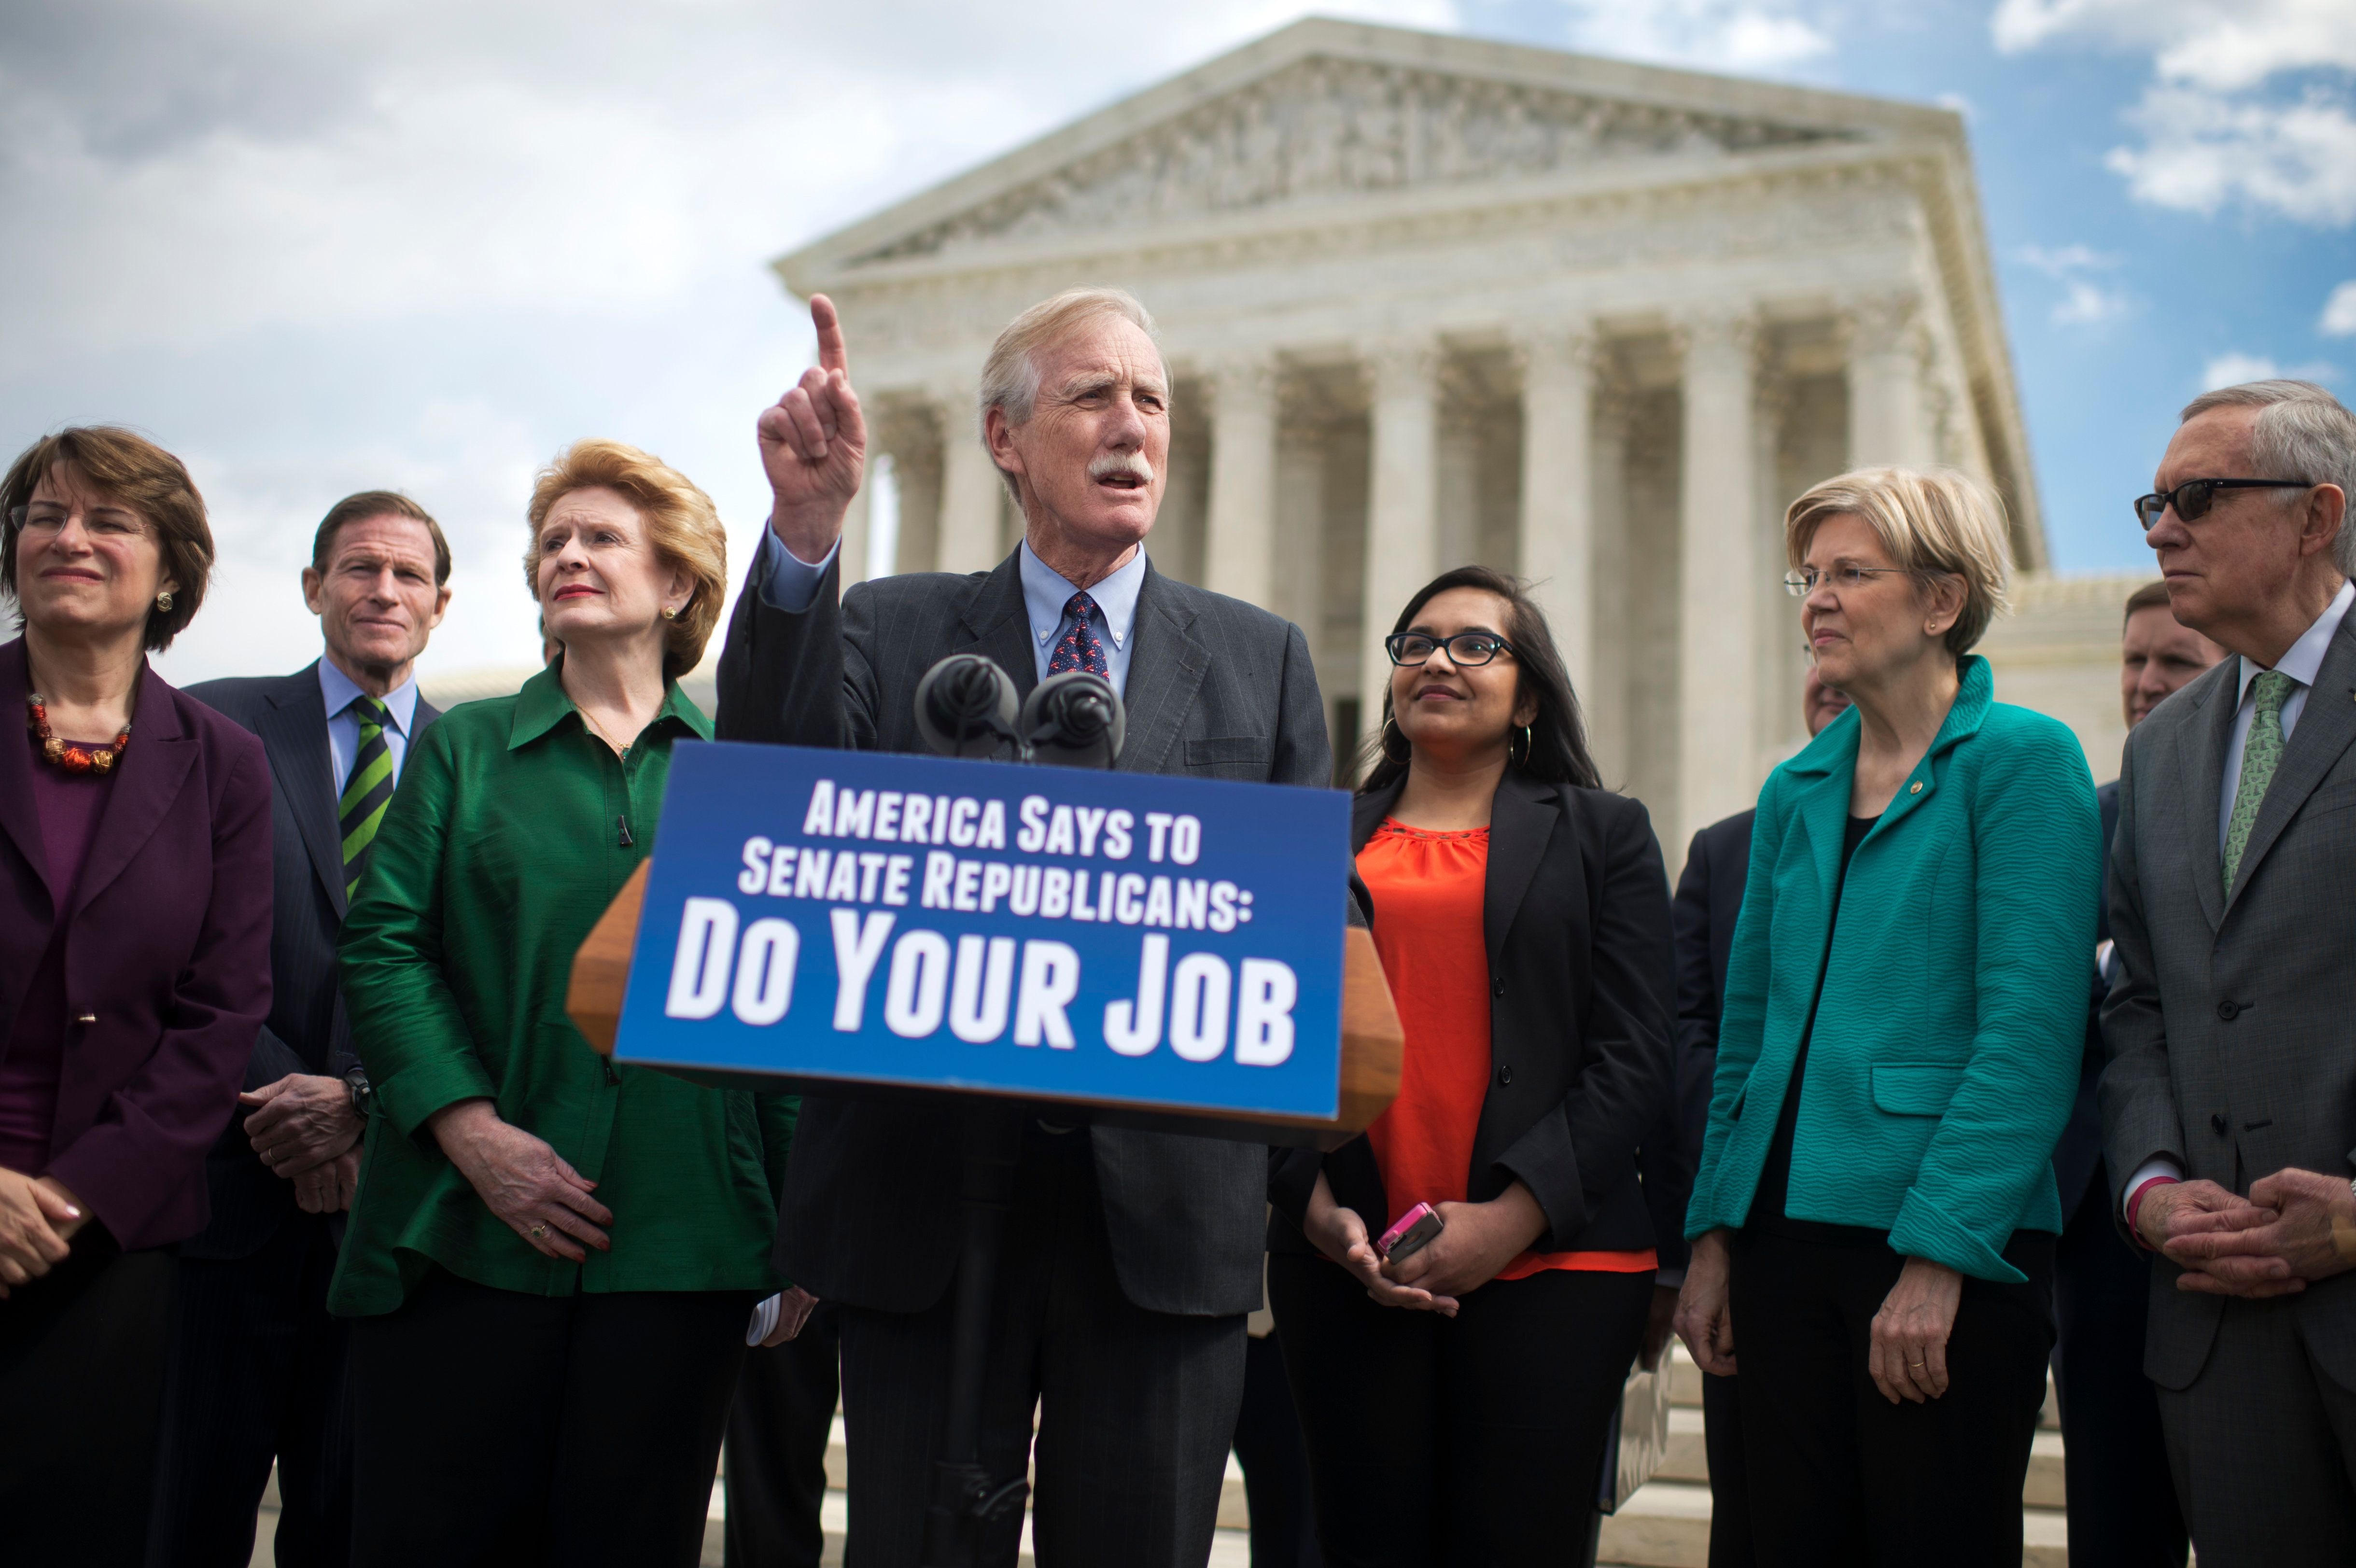 UNITED STATES - MARCH 17: From left, Sens. Amy Klobuchar, D-Minn., Richard Blumenthal, D-Conn., Debbie Stabenow, D-Mich., Angus King, I-Me., Dr. Manisha Sharma, Elizabeth Warren, D-Mass., and Senate Minority Leader Harry Reid, D-Nev., conduct a news conference at the Supreme Court to encourage a hearings and a vote on justice nominee Merrick Garland, March 17, 2016. (Photo By Tom Williams/CQ Roll Call)